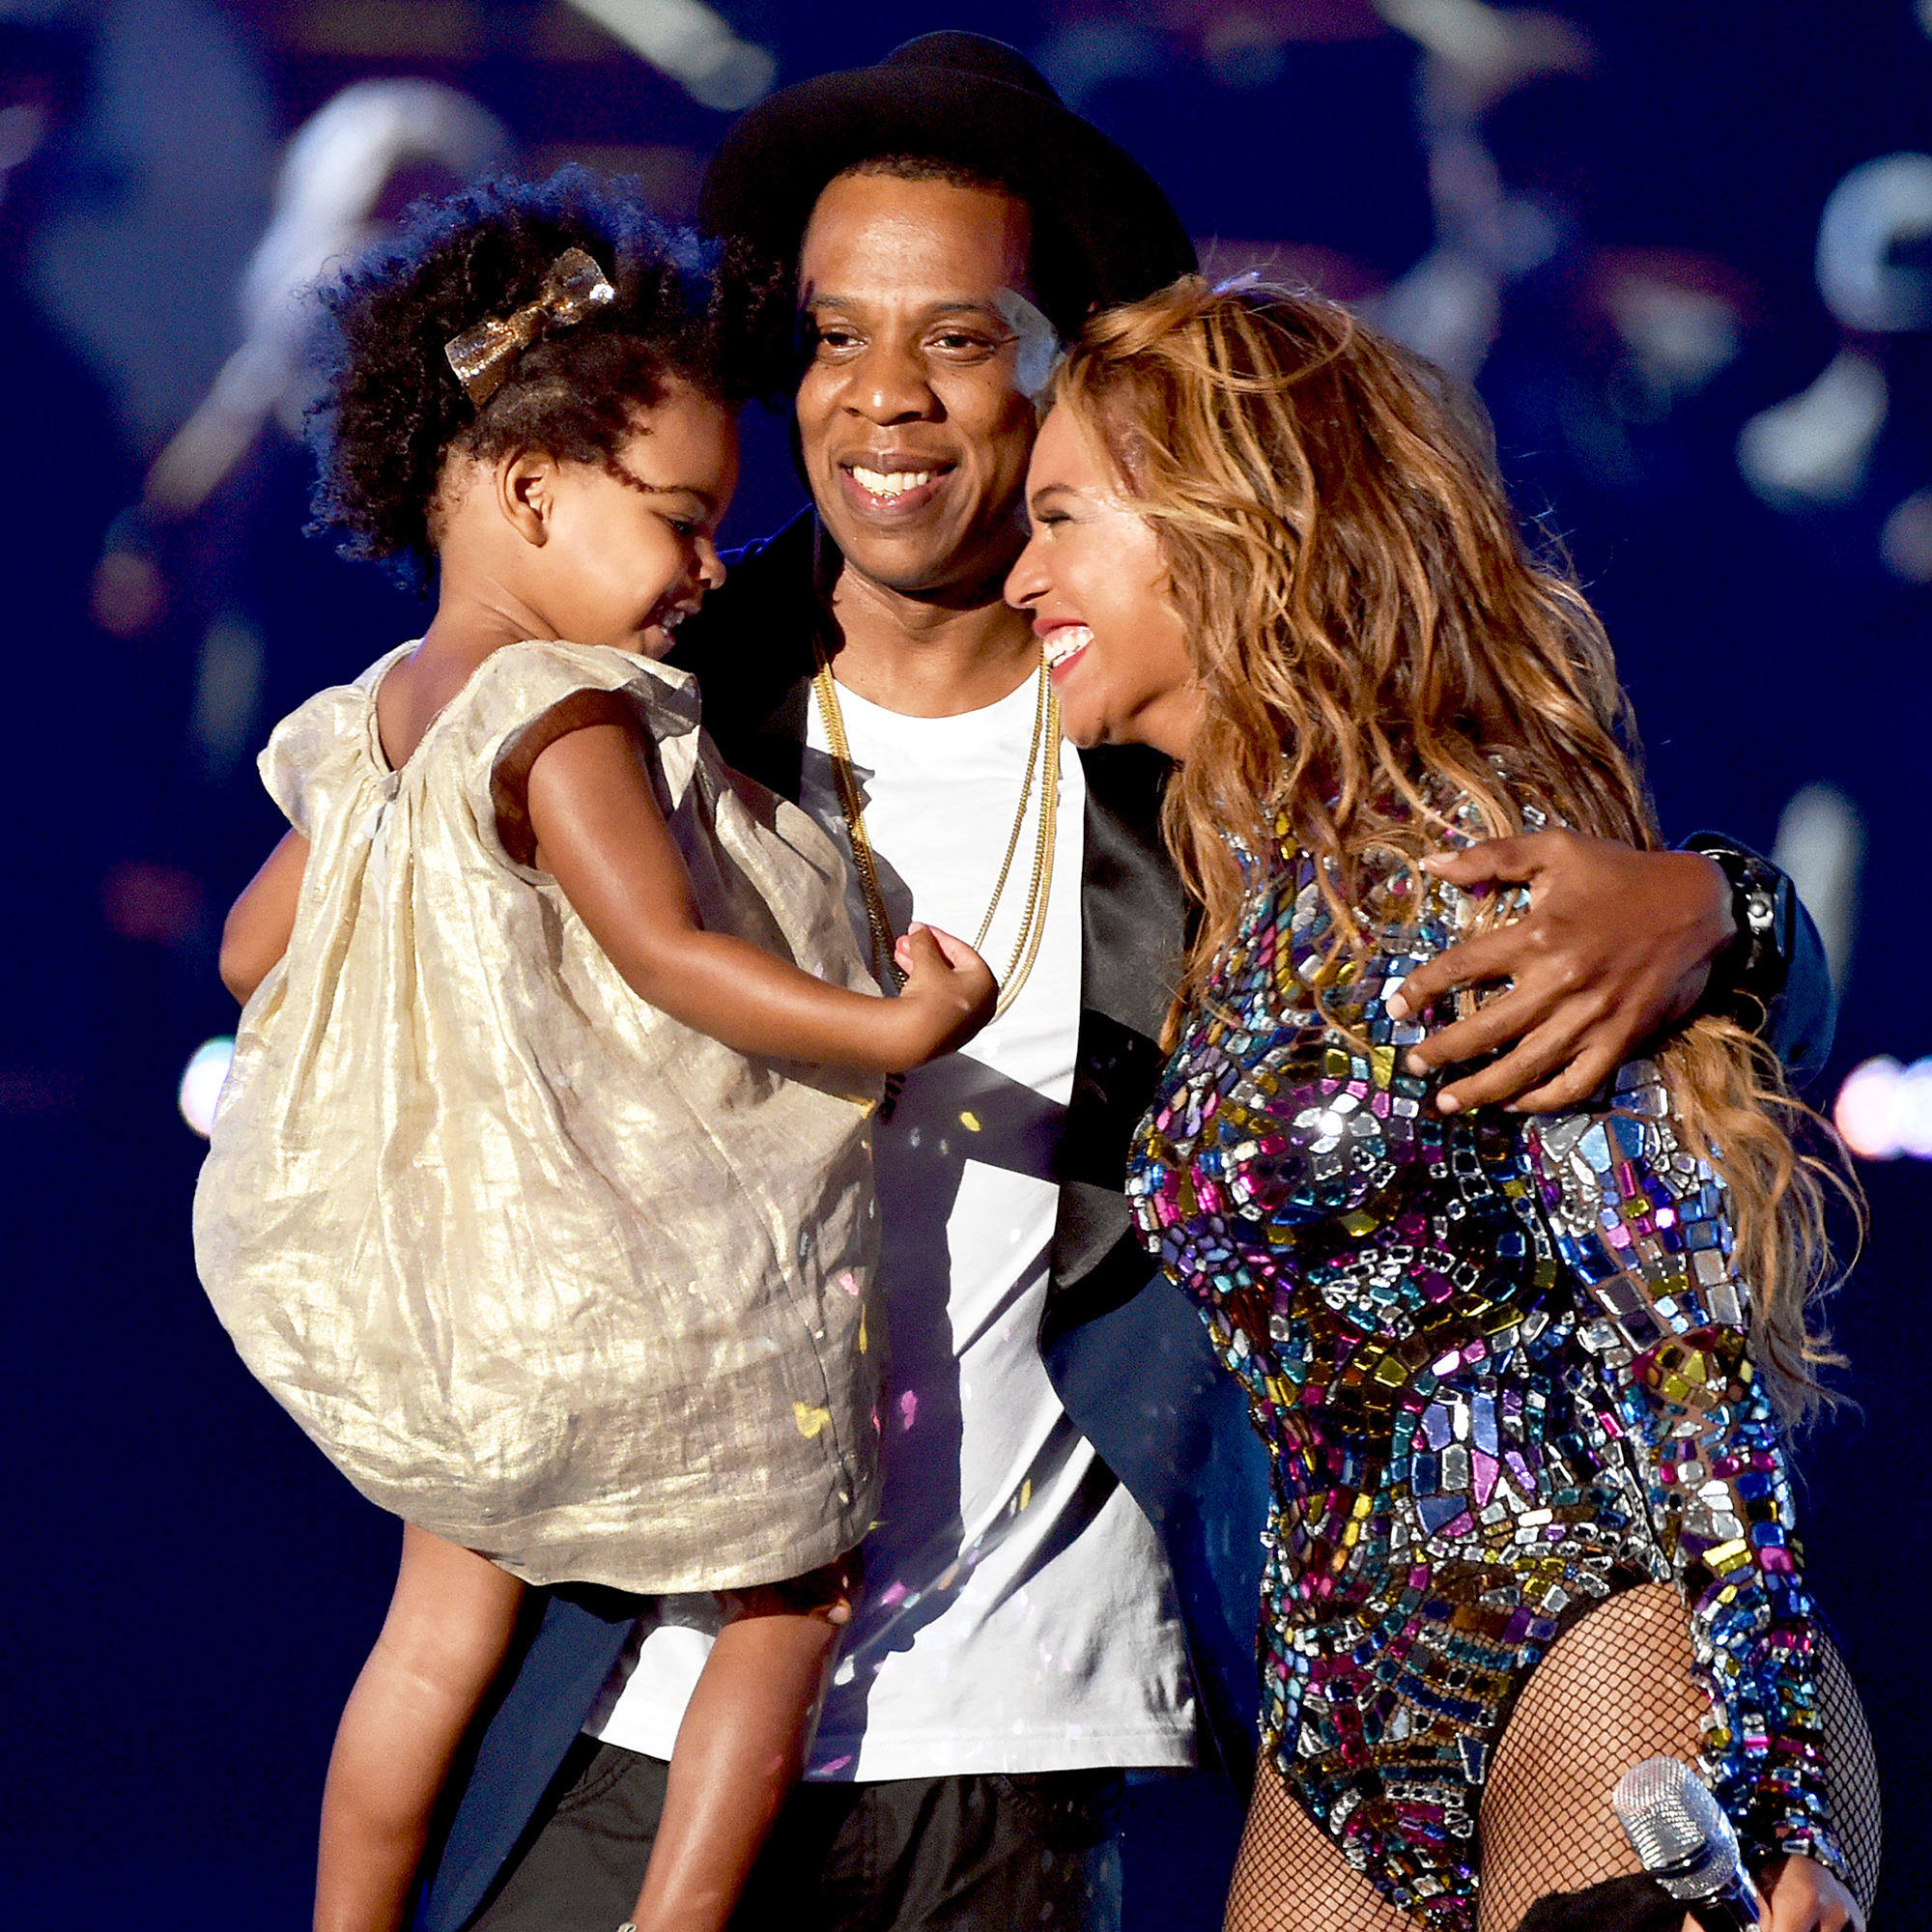 Exciting News For Beyoncé and Jay Z Exciting News For Beyoncé and Jay Z new photo